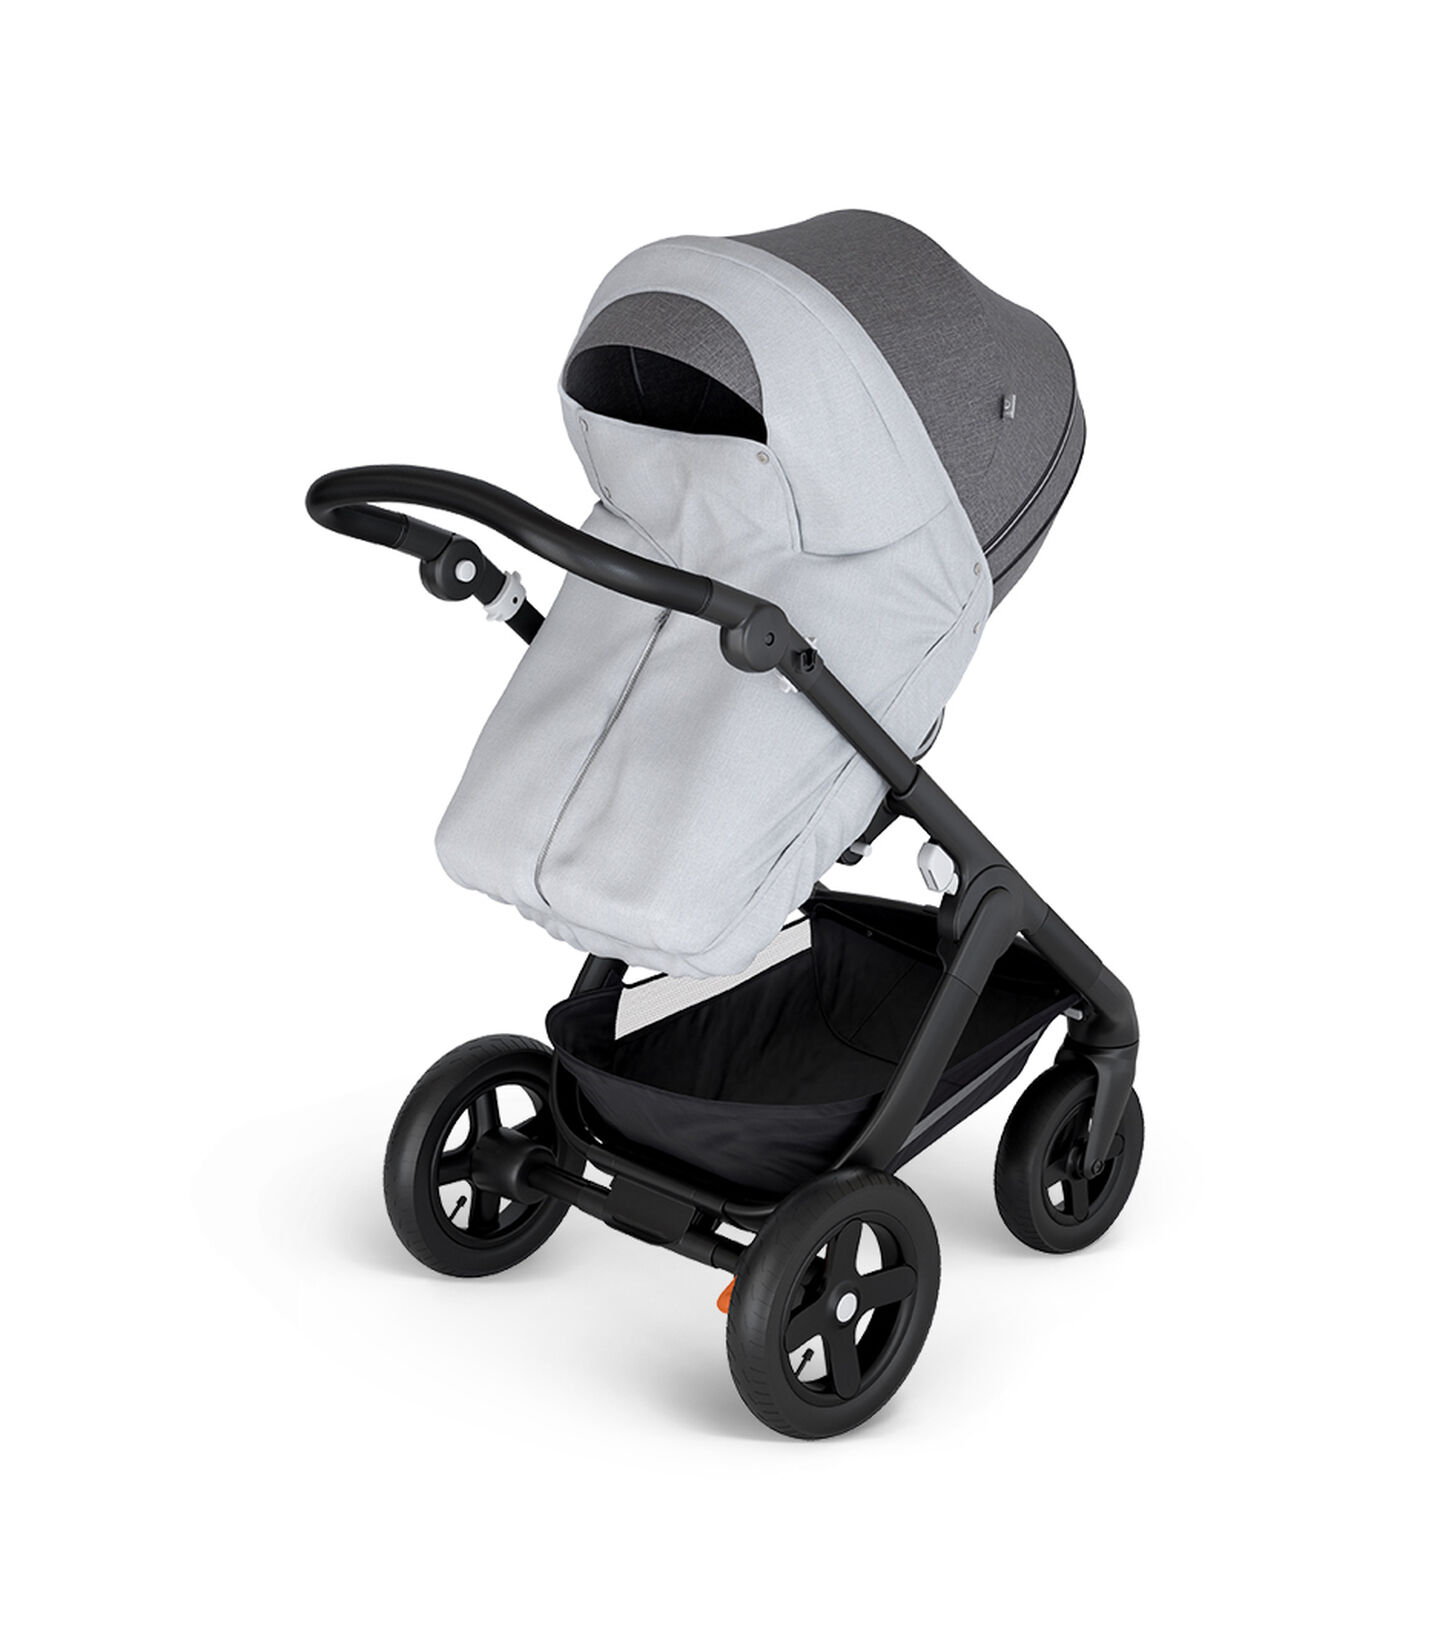 Stokke® Trailz™ with Black Chassis and Stokke® Stroller Seat Black Melange. Stokke® Stroller Storm Cover, Grey Melange.